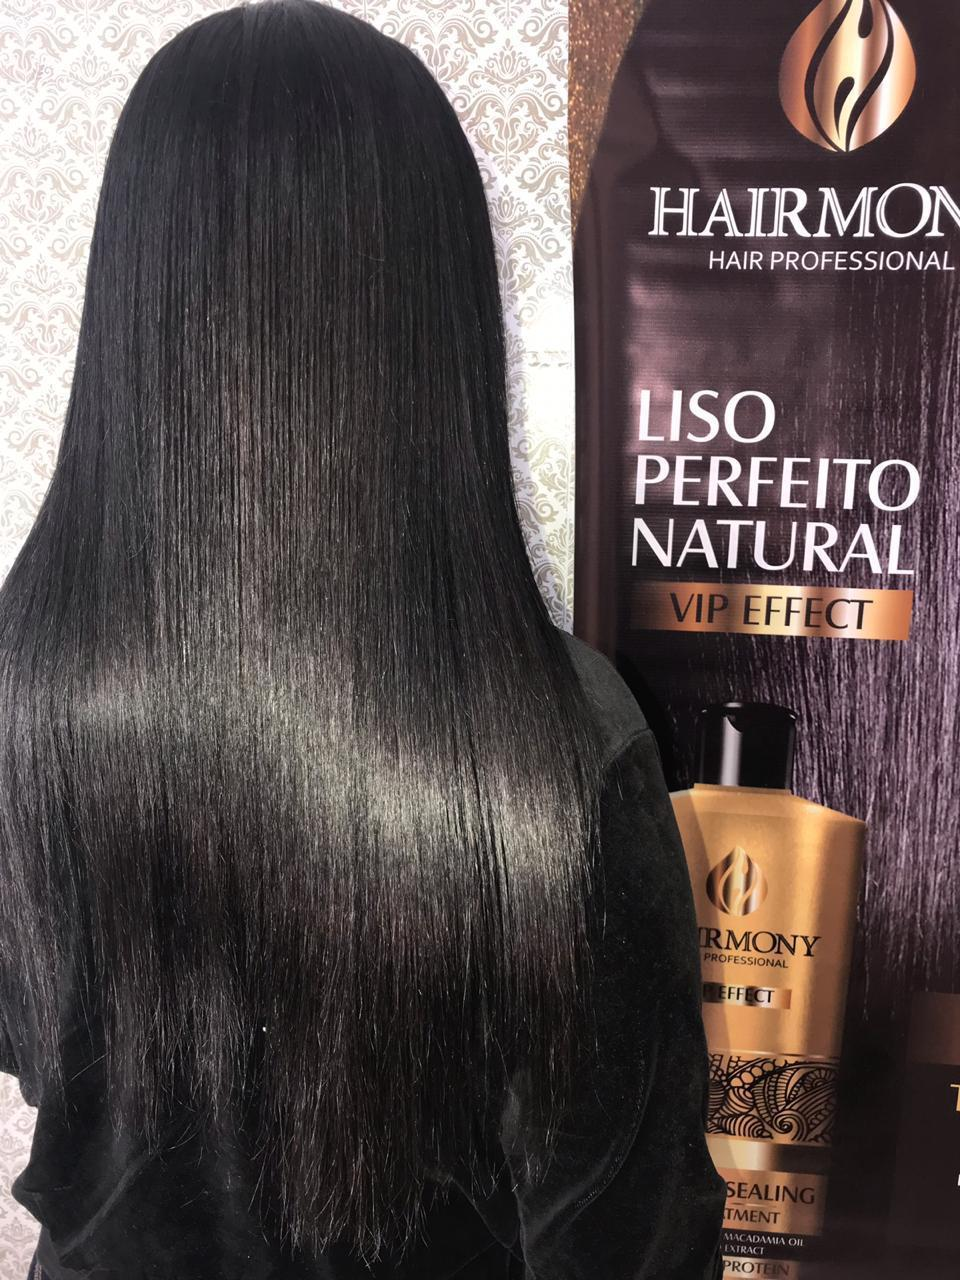 Professional Brazilian Protein Thermal Sealing Liss Treatment 1L - Pro Hairmony